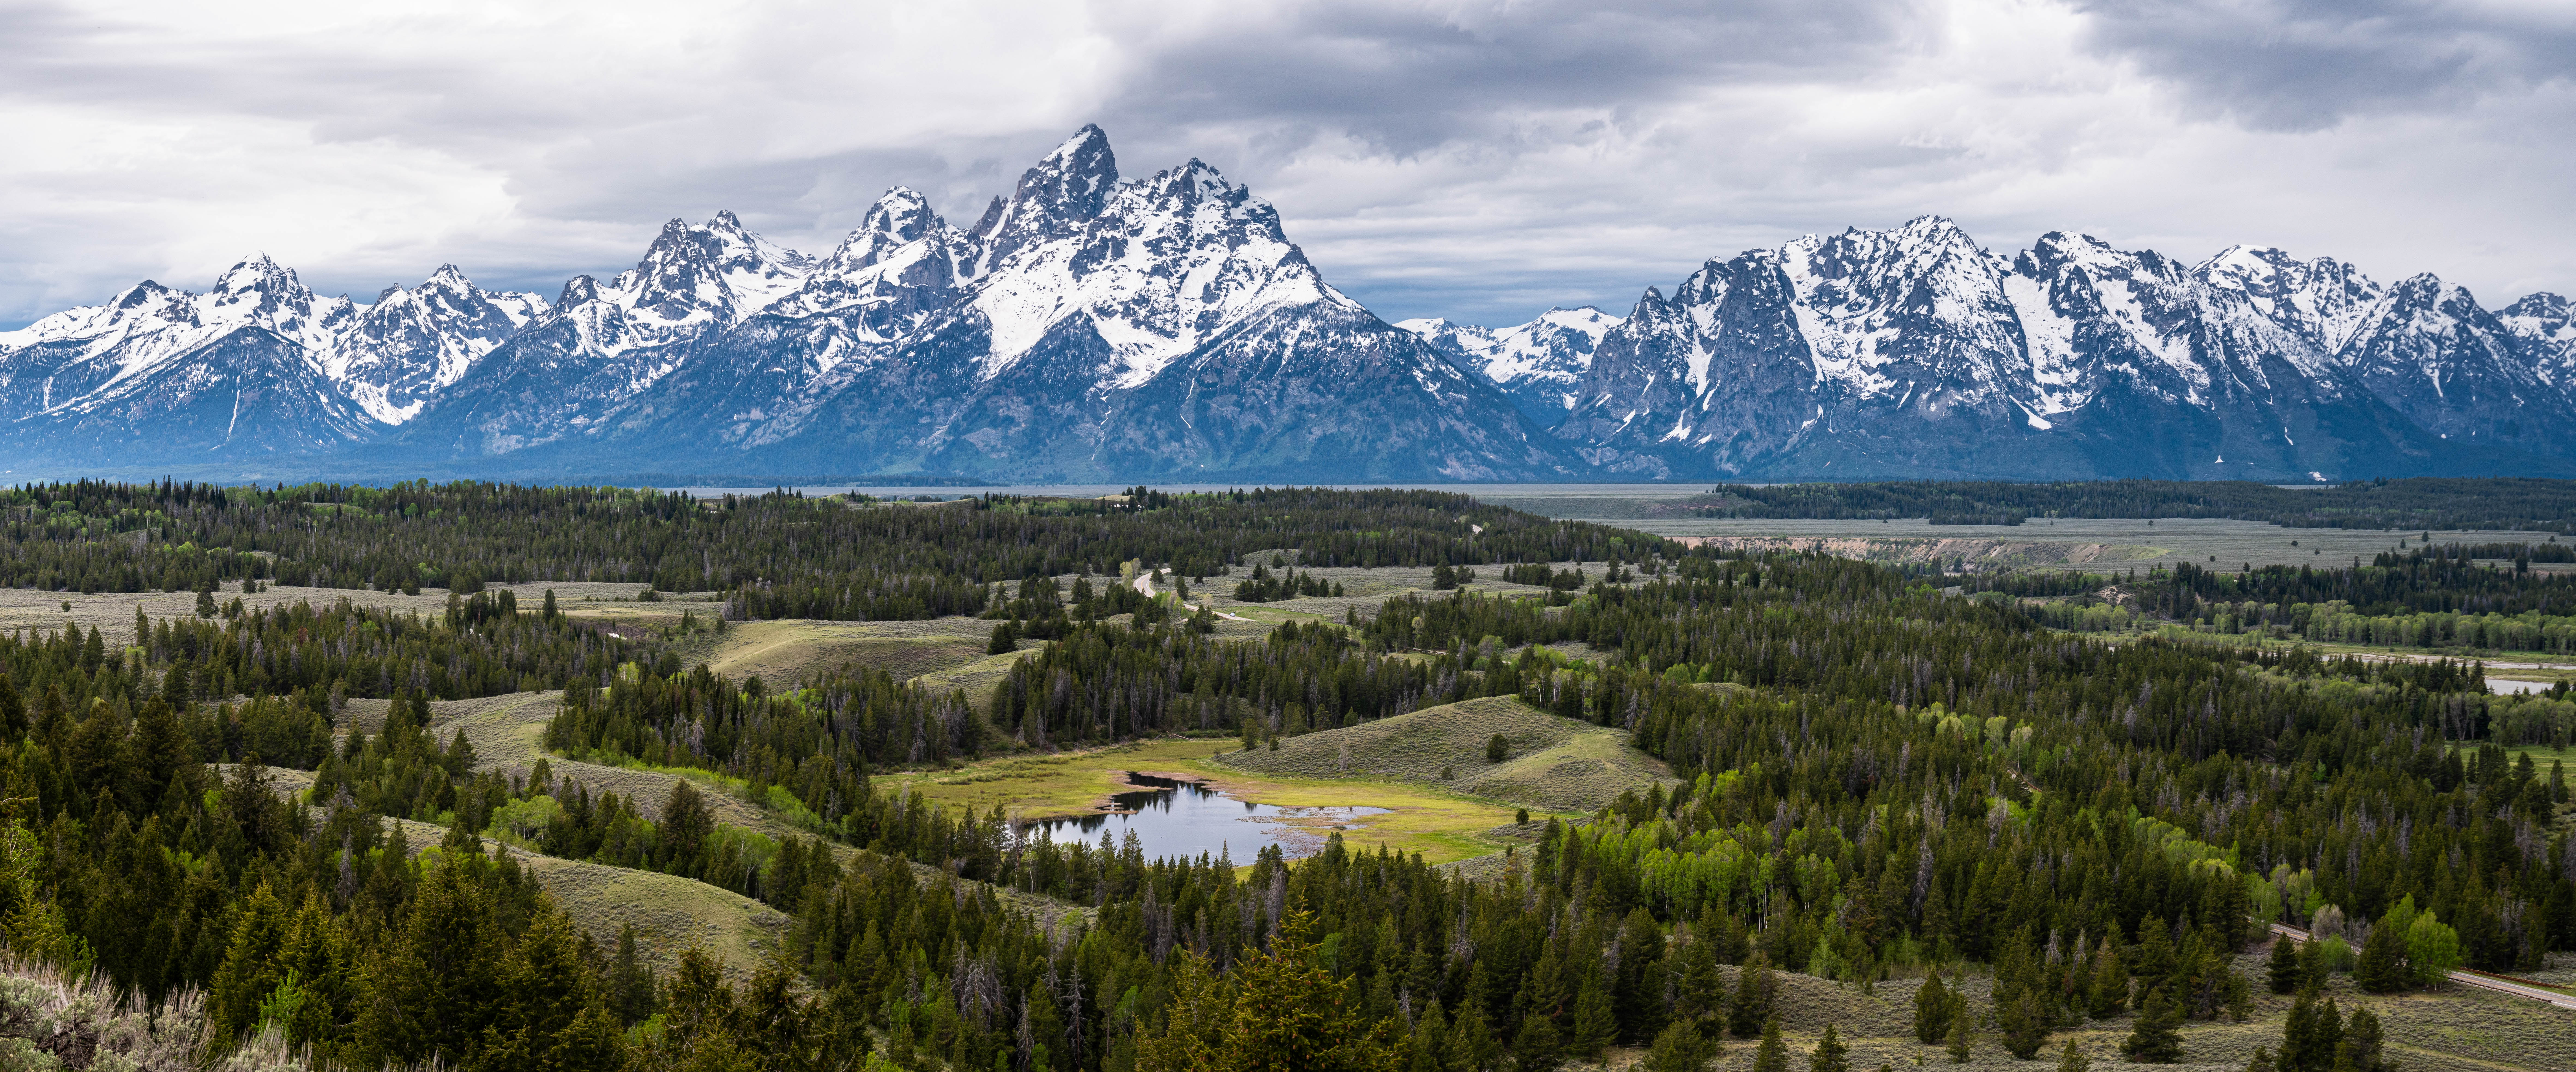 Free download high resolution image - free image free photo free stock image public domain picture -Grand Tetons national mountain range